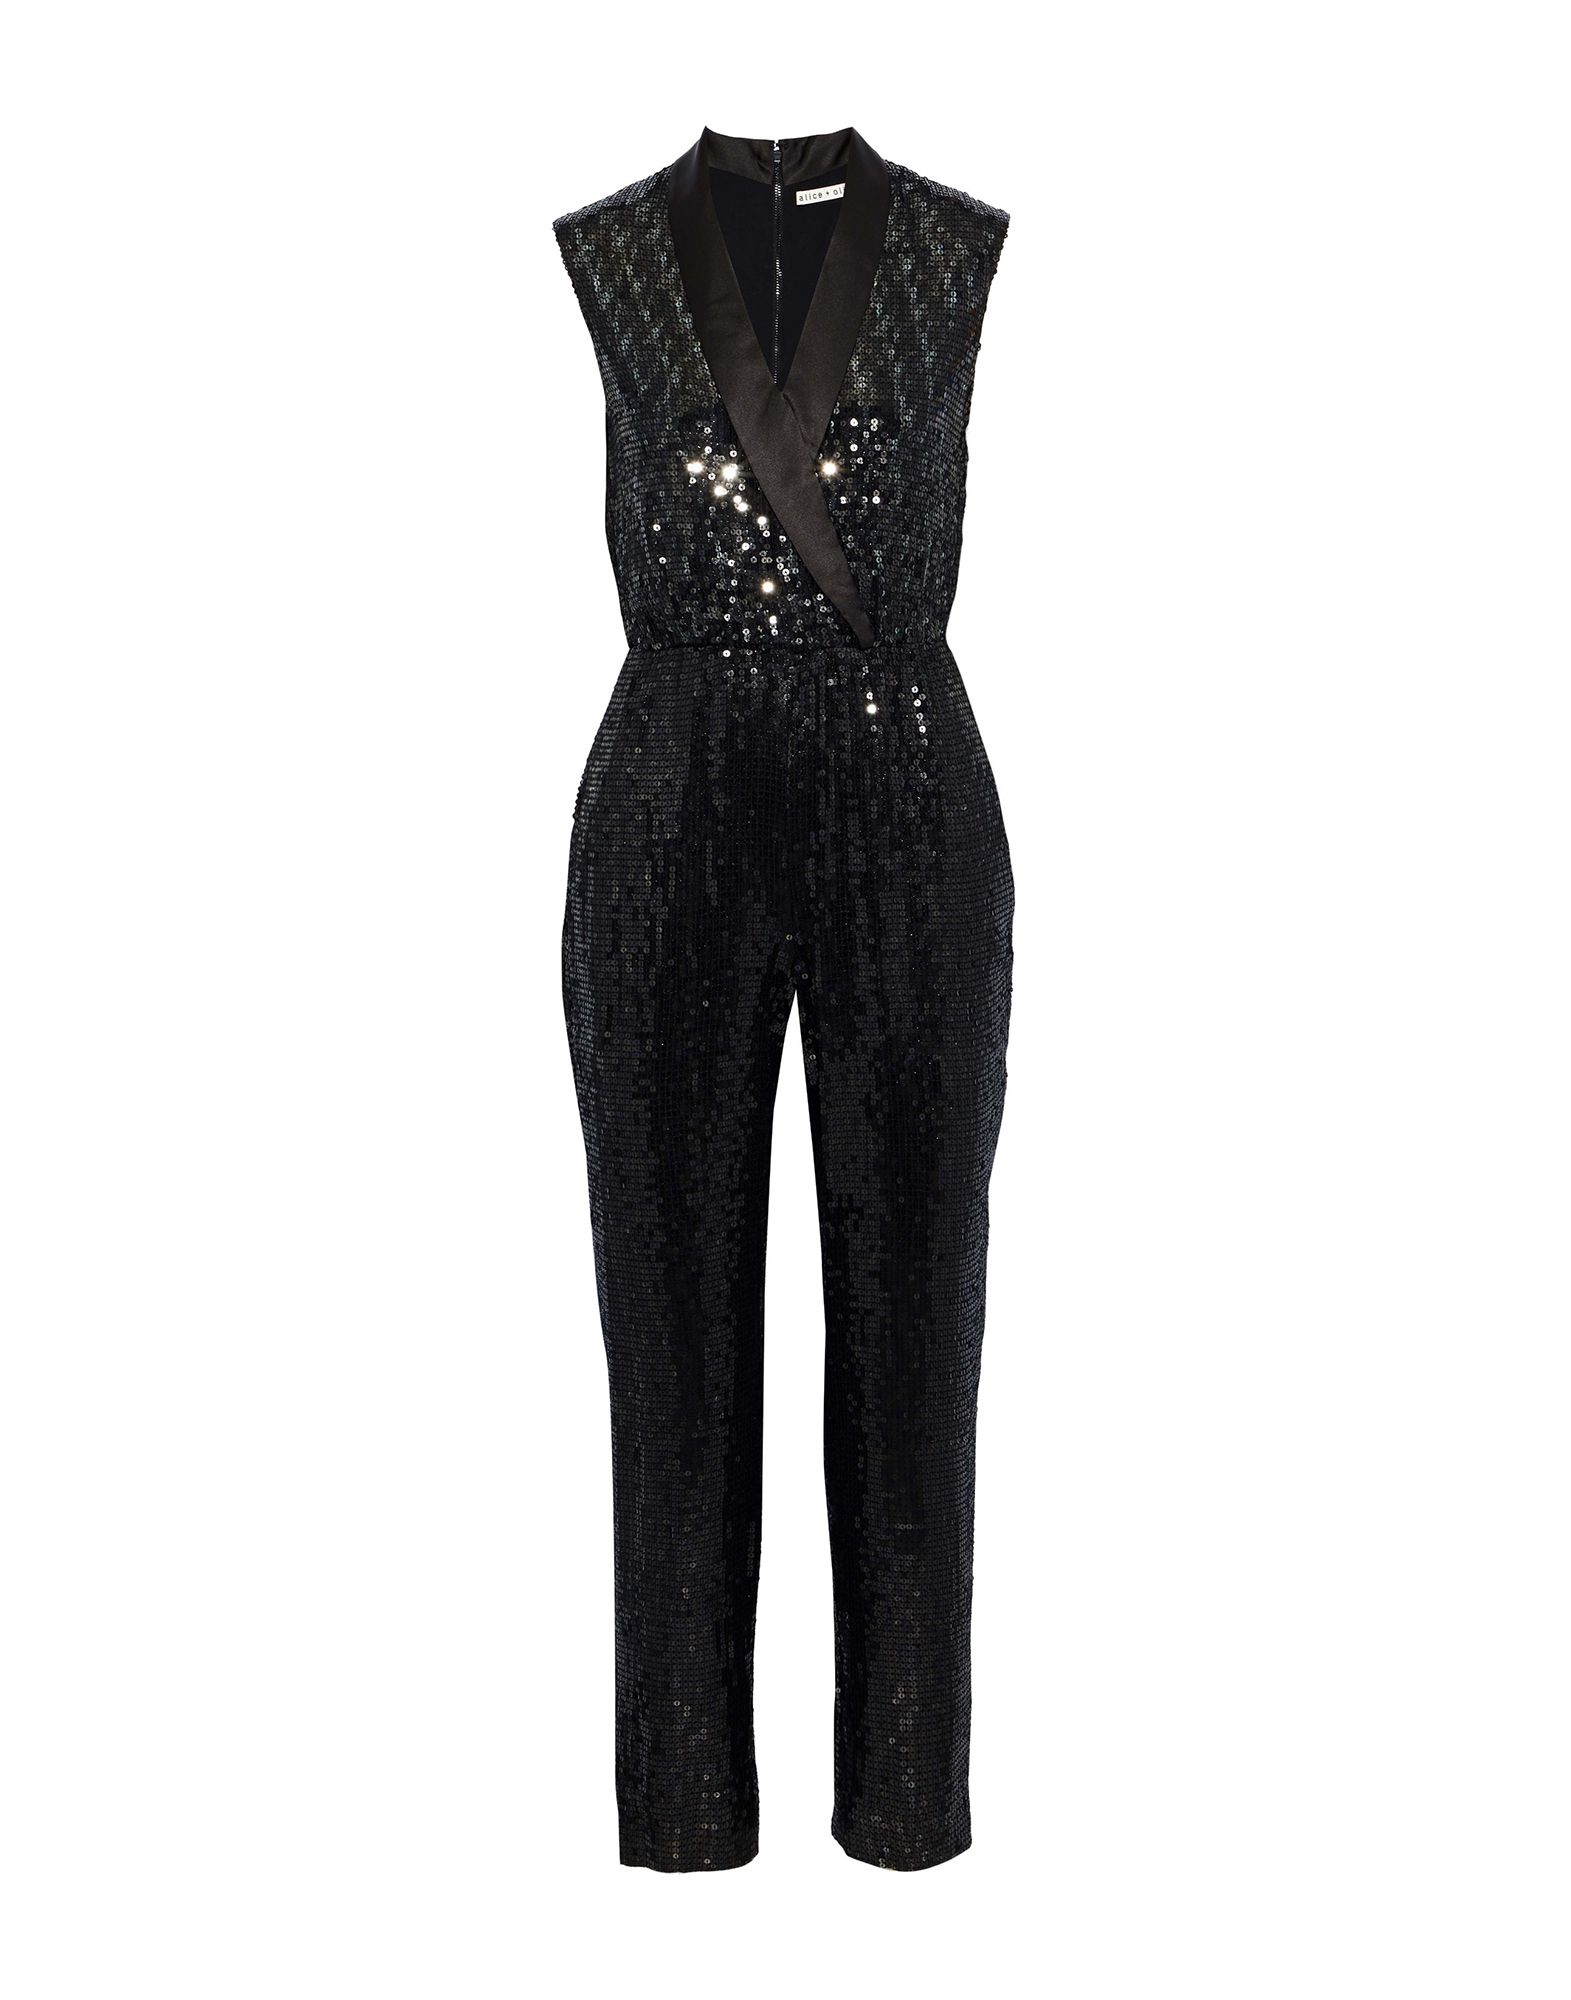 ALICE + OLIVIA Jumpsuits. satin, plain weave, sequins, basic solid color, sleeveless, lapel collar, fully lined, multipockets, zipper closure, rear closure, mid rise. 100% Viscose